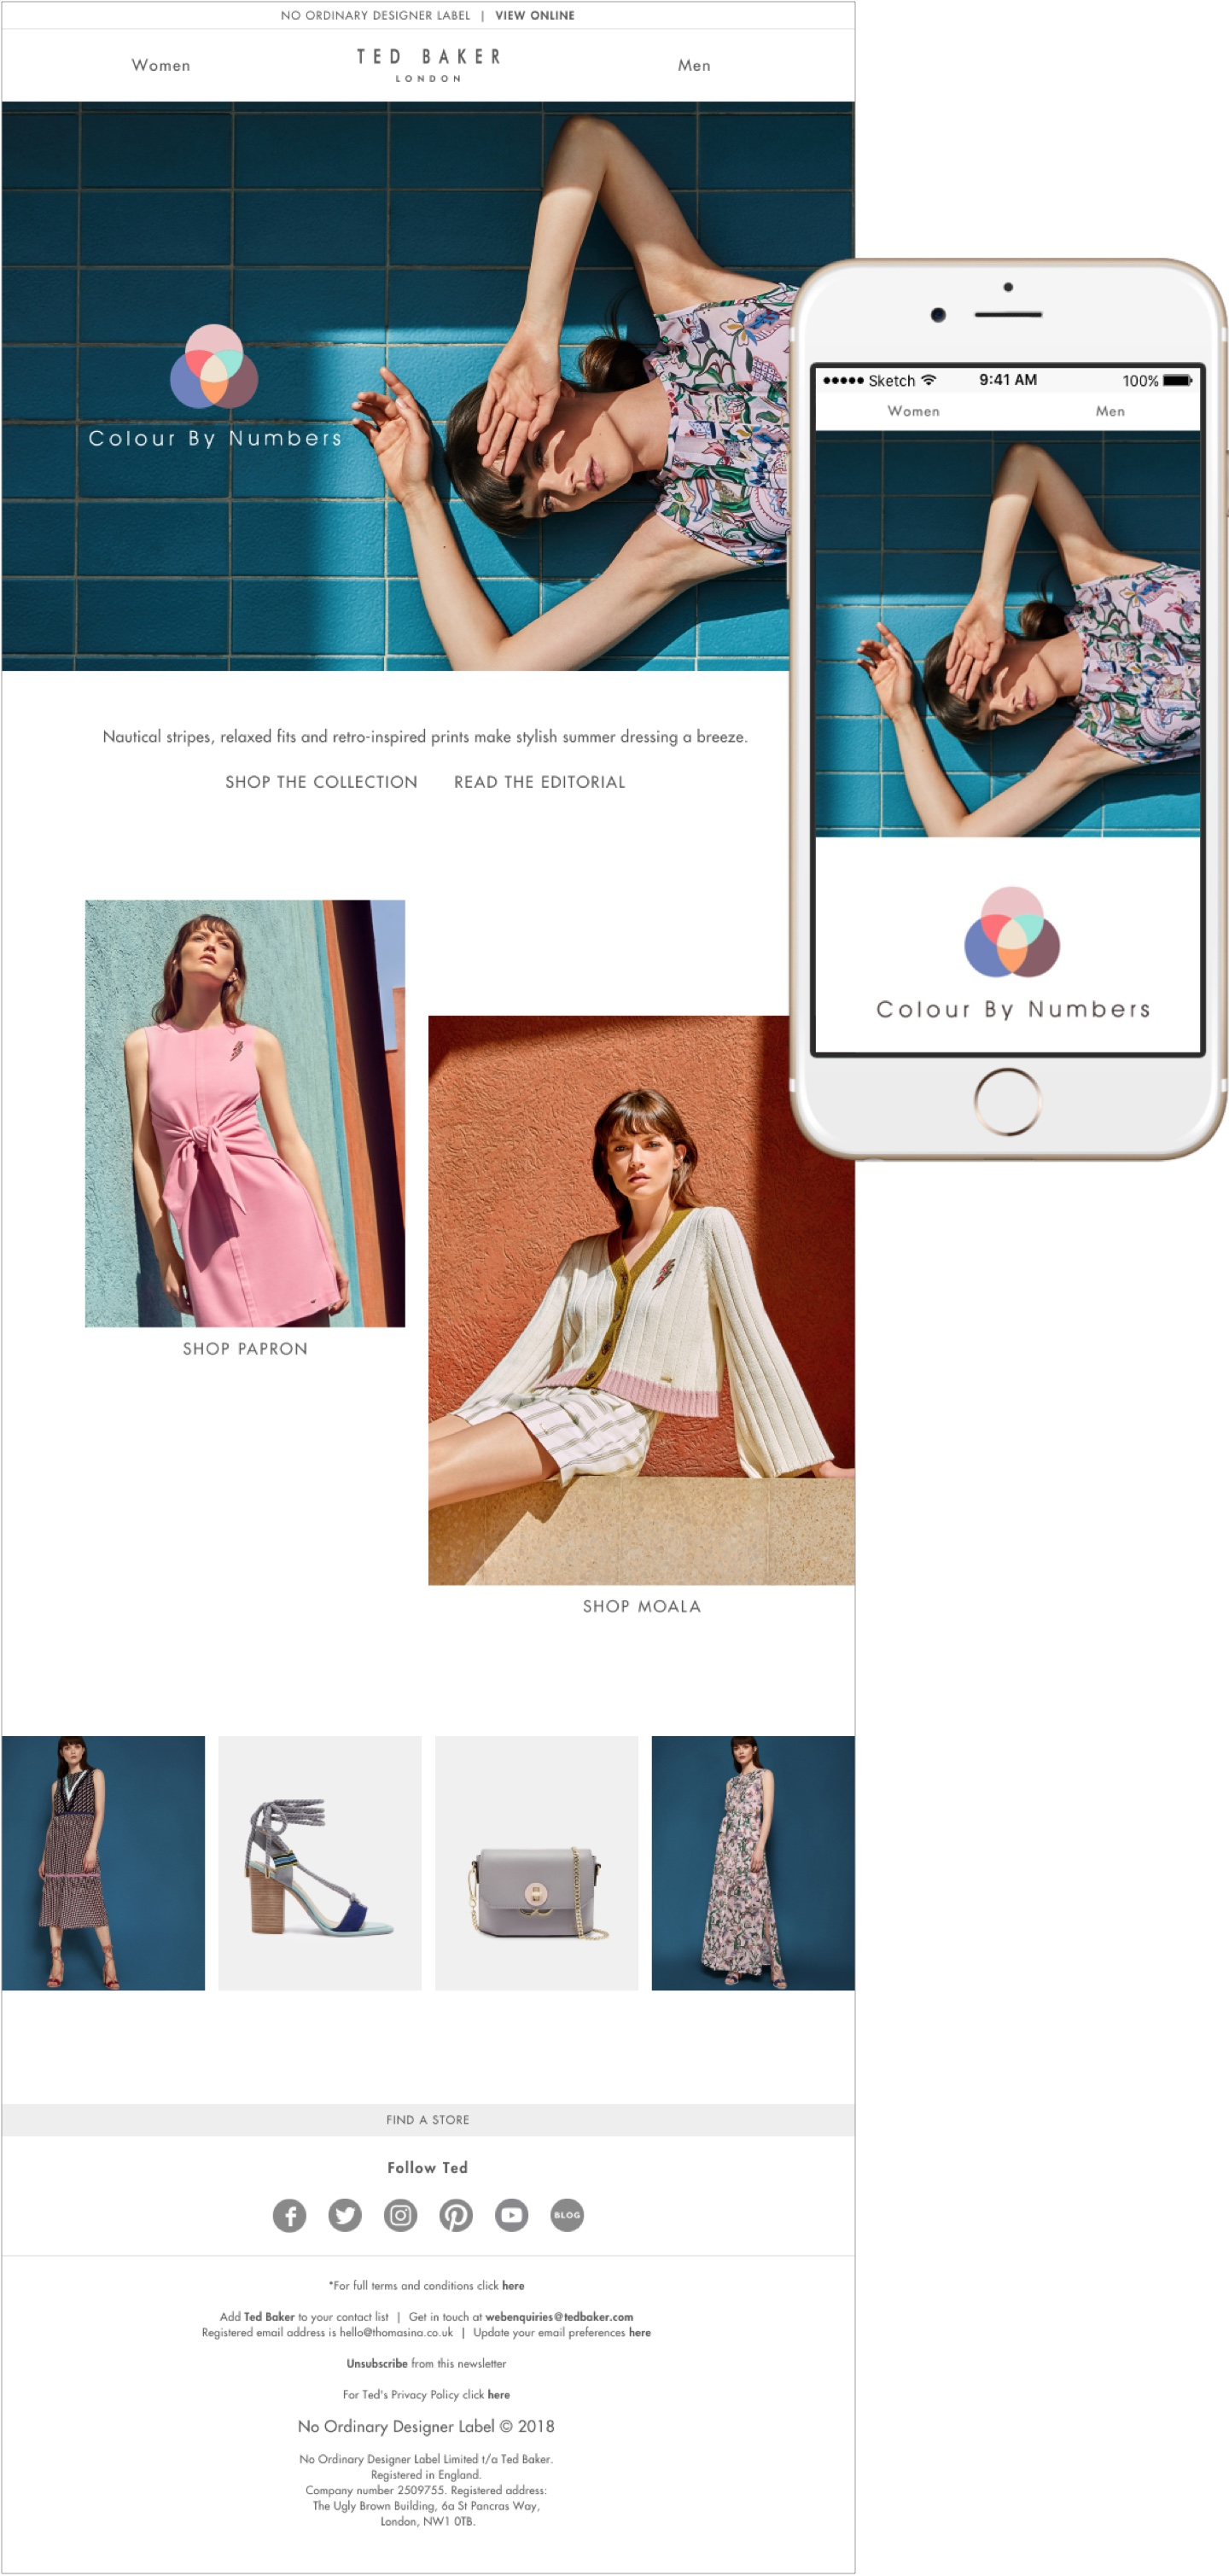 Desktop email design for Ted Baker